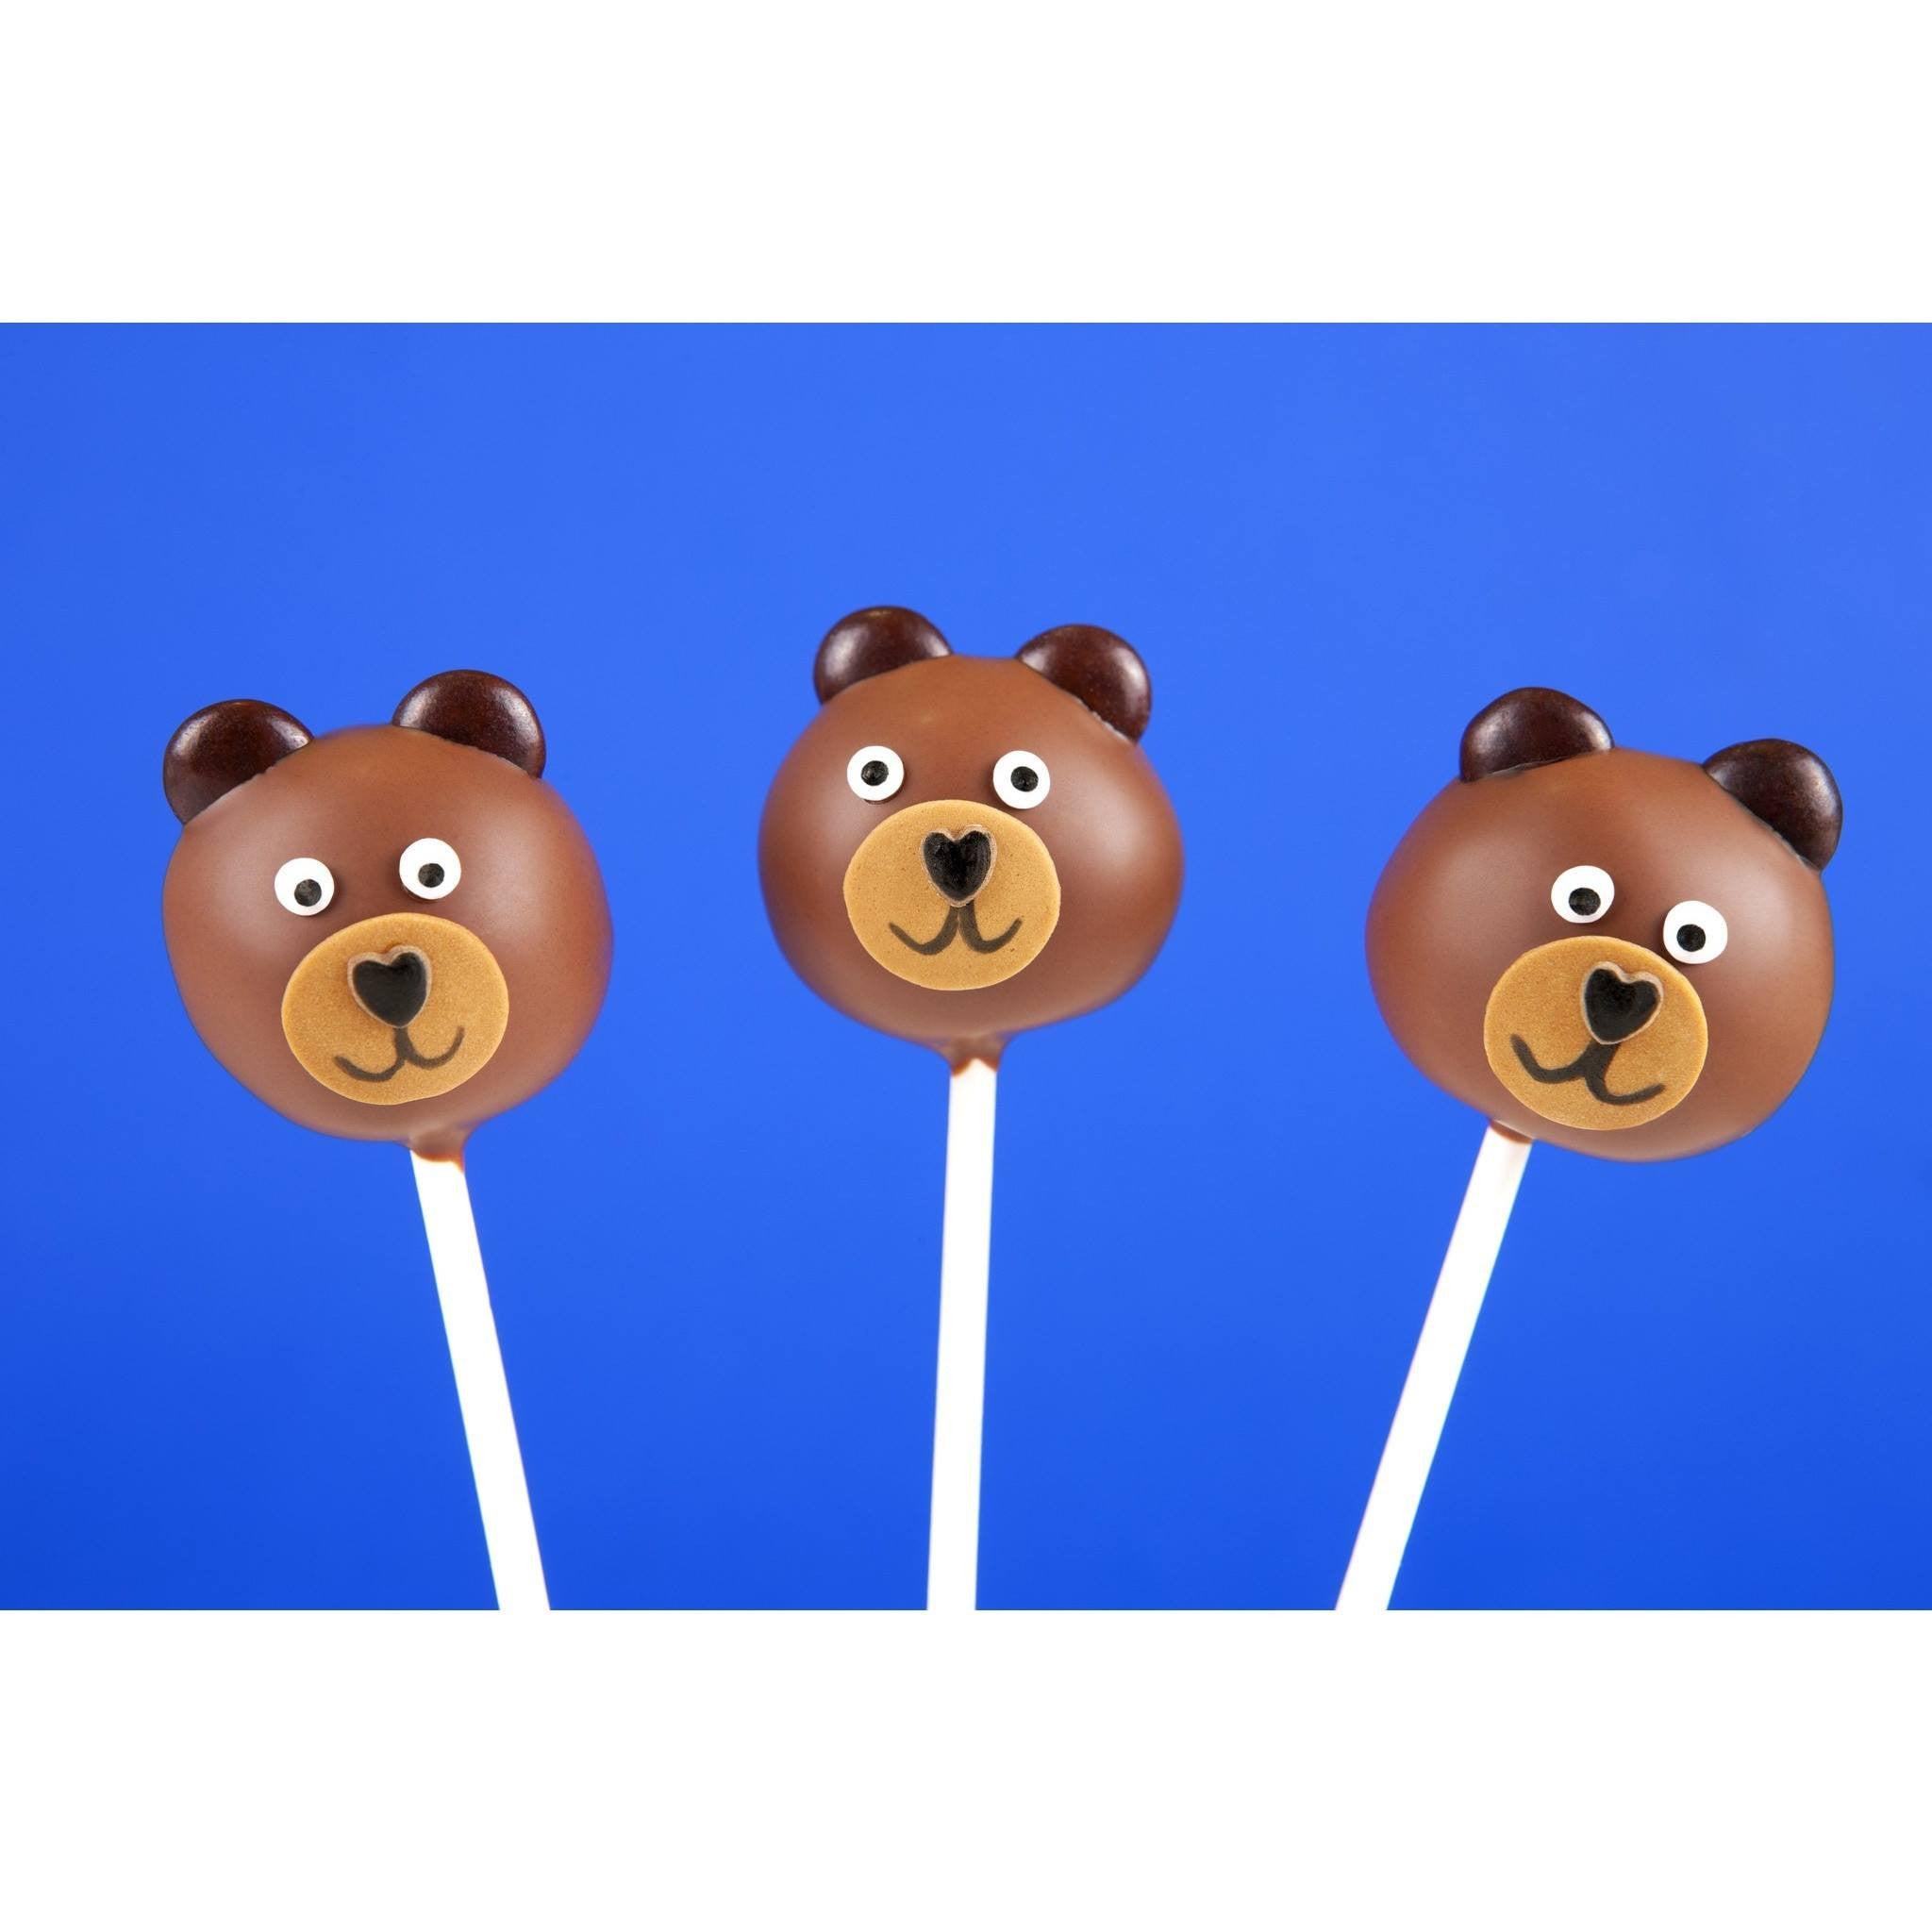 Buy Cake Pops Bears By Cake Pop Parties order online - Cake Pops Parties